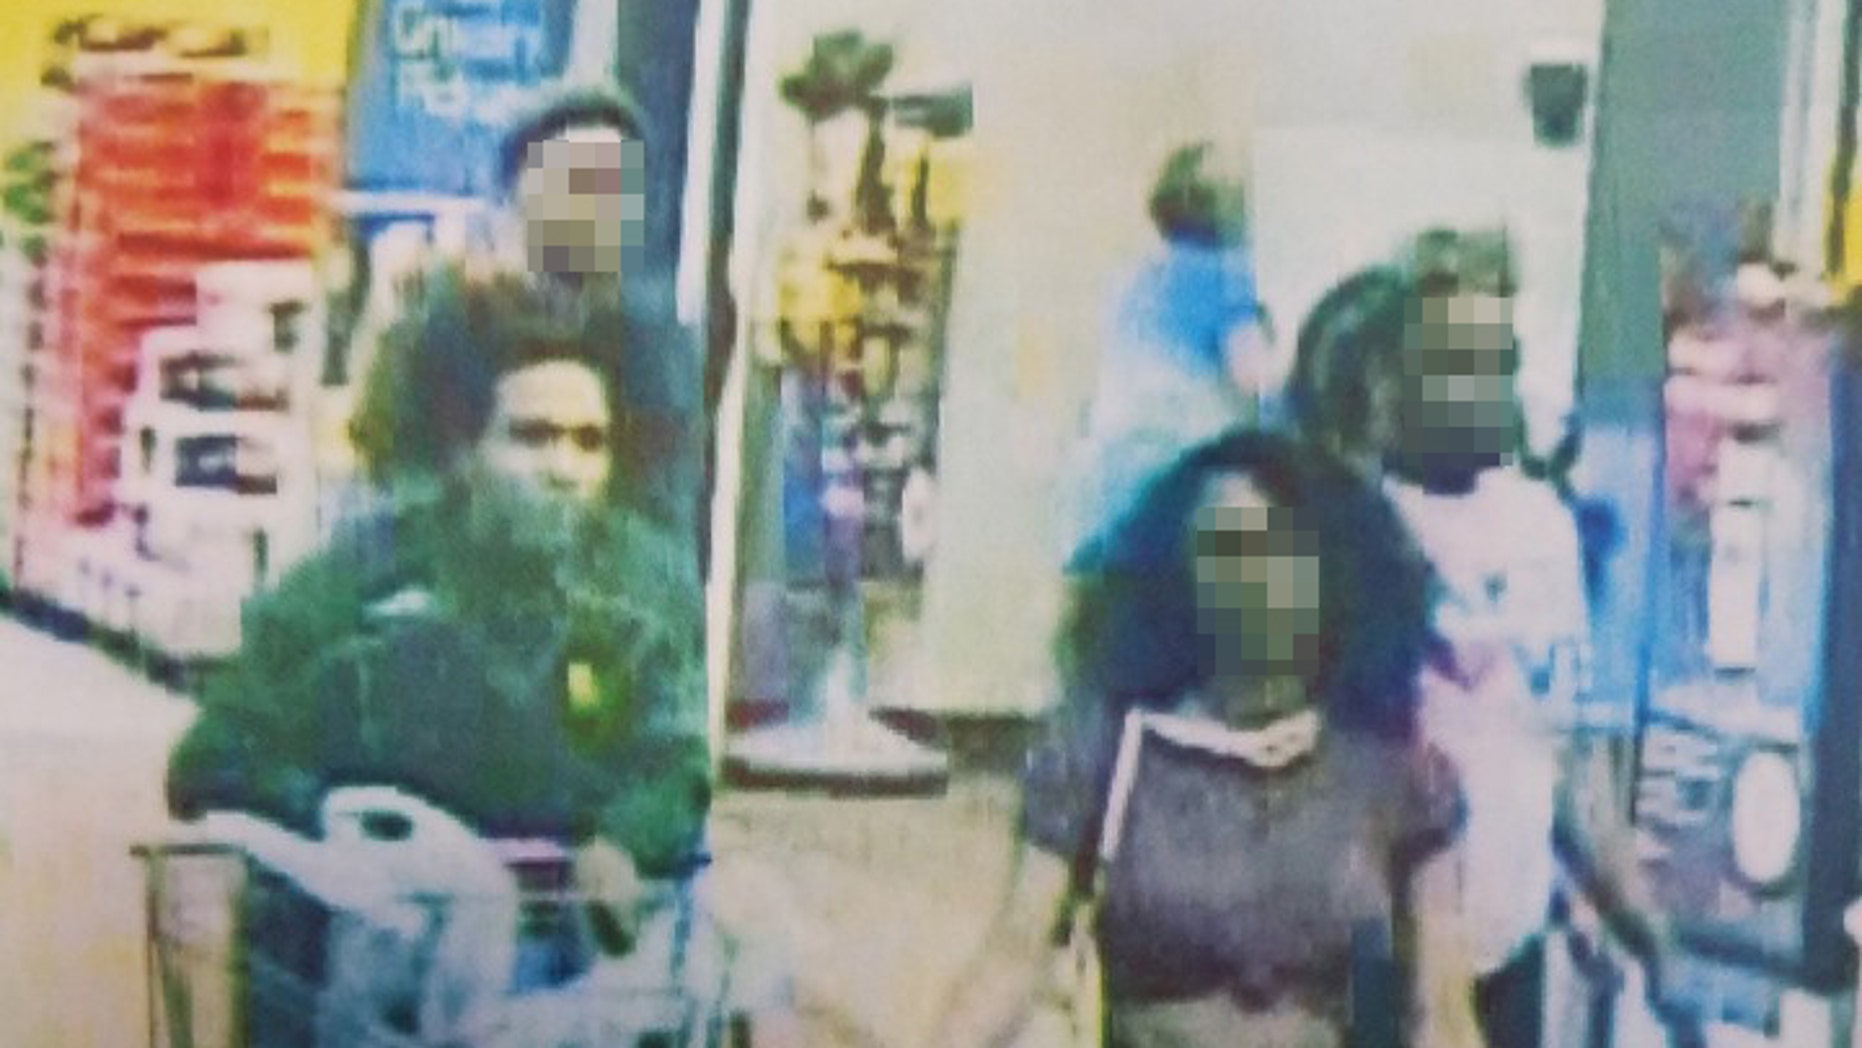 Still from store video display a suspected Blue Bell Licker and her boyfriend. The girl, a youthful whose name has not been released, has been identified by Lufkin, Texas military as a chairman who licked a cylinder of ice cream in a Walmart store afterwards put it behind in a freezer. 